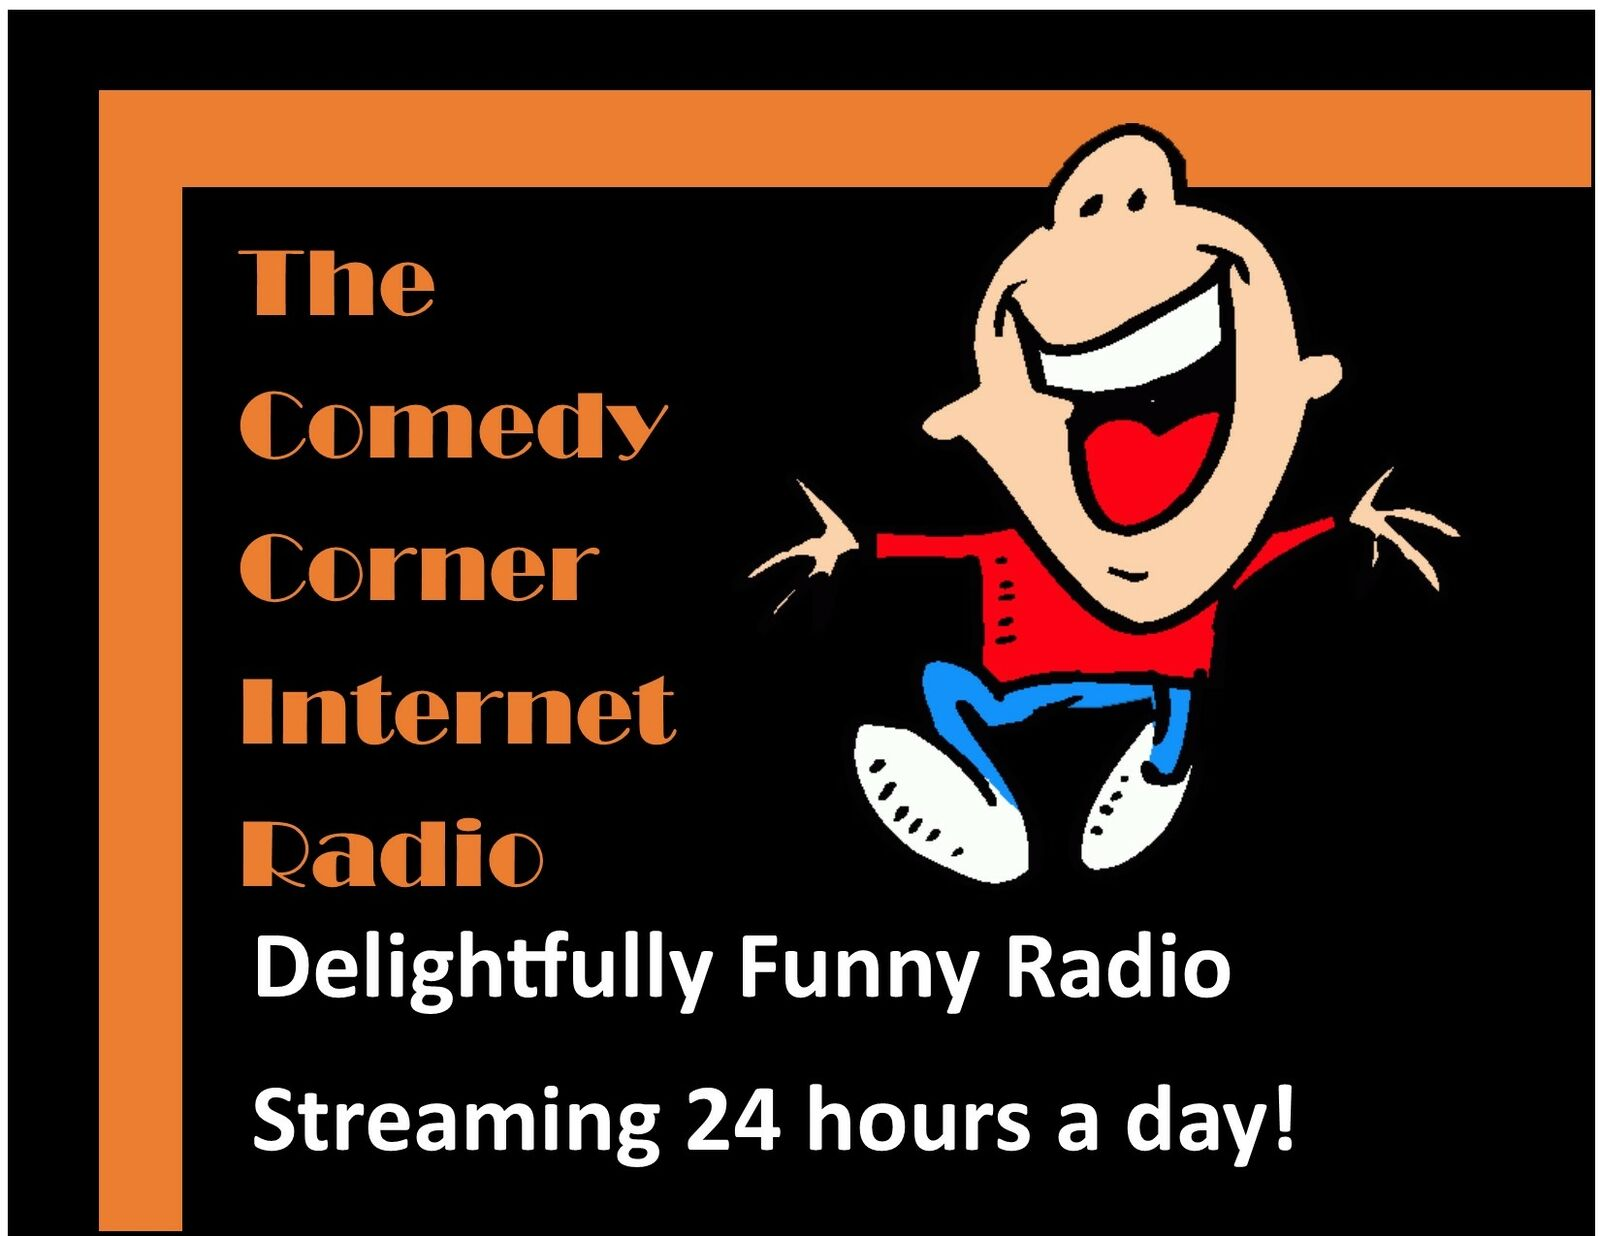 Comedy Corner CD MP3 Downloads affiliated Internet Radio Station runs auto 24/7